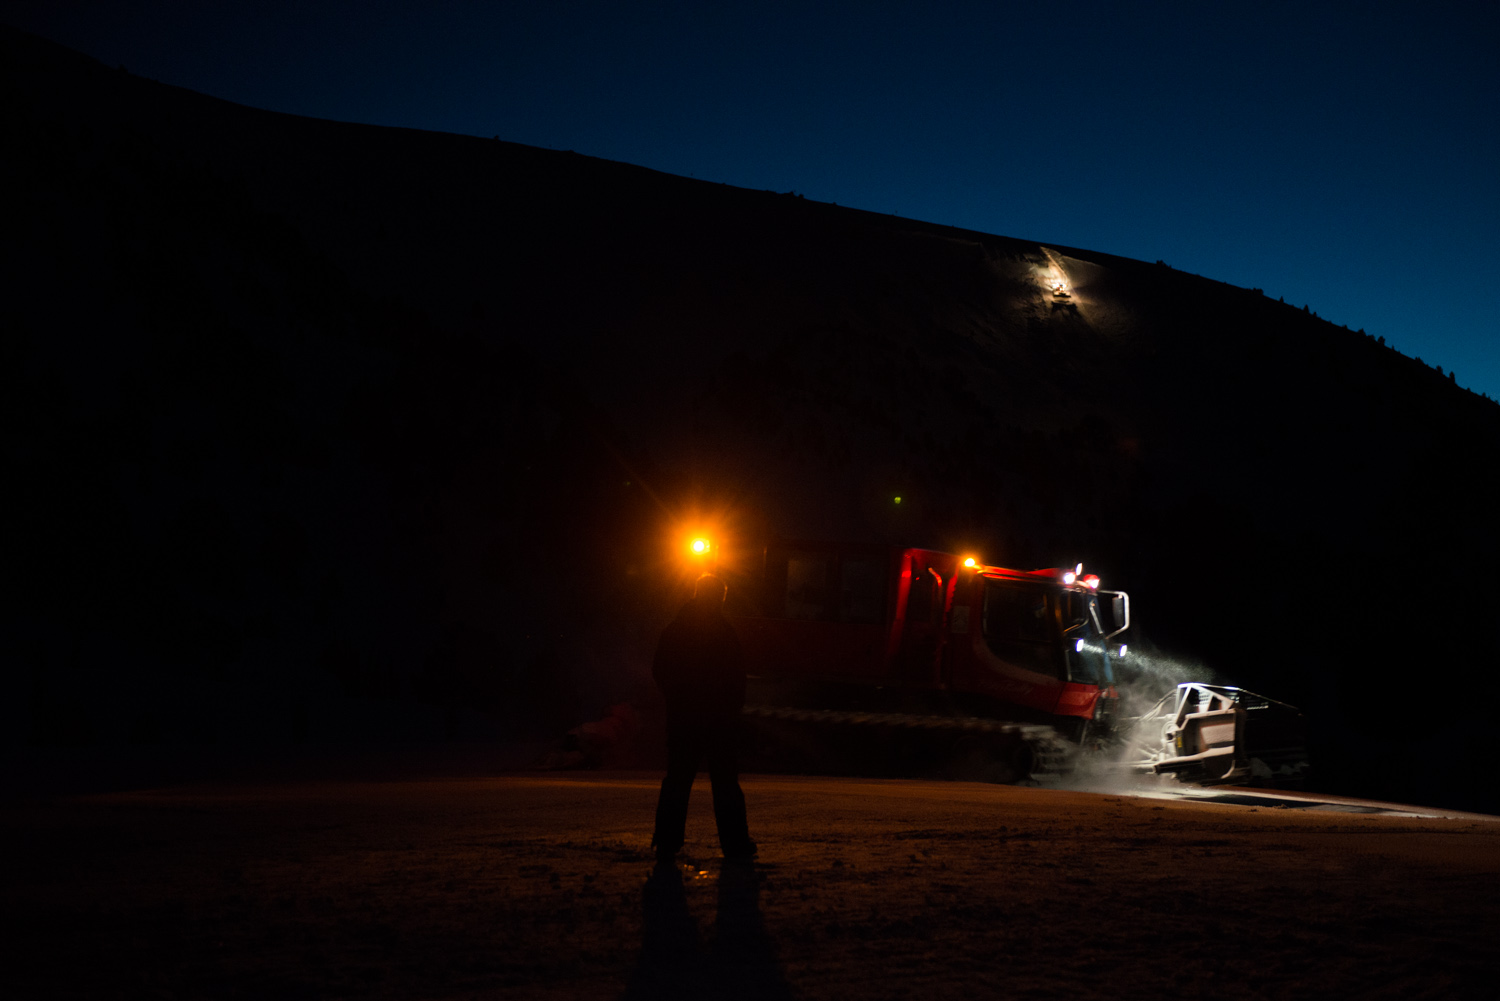 Went for a ride in one of the amazing Piste Bashers that drive up amazingly steep slopes all night to refresh the snow